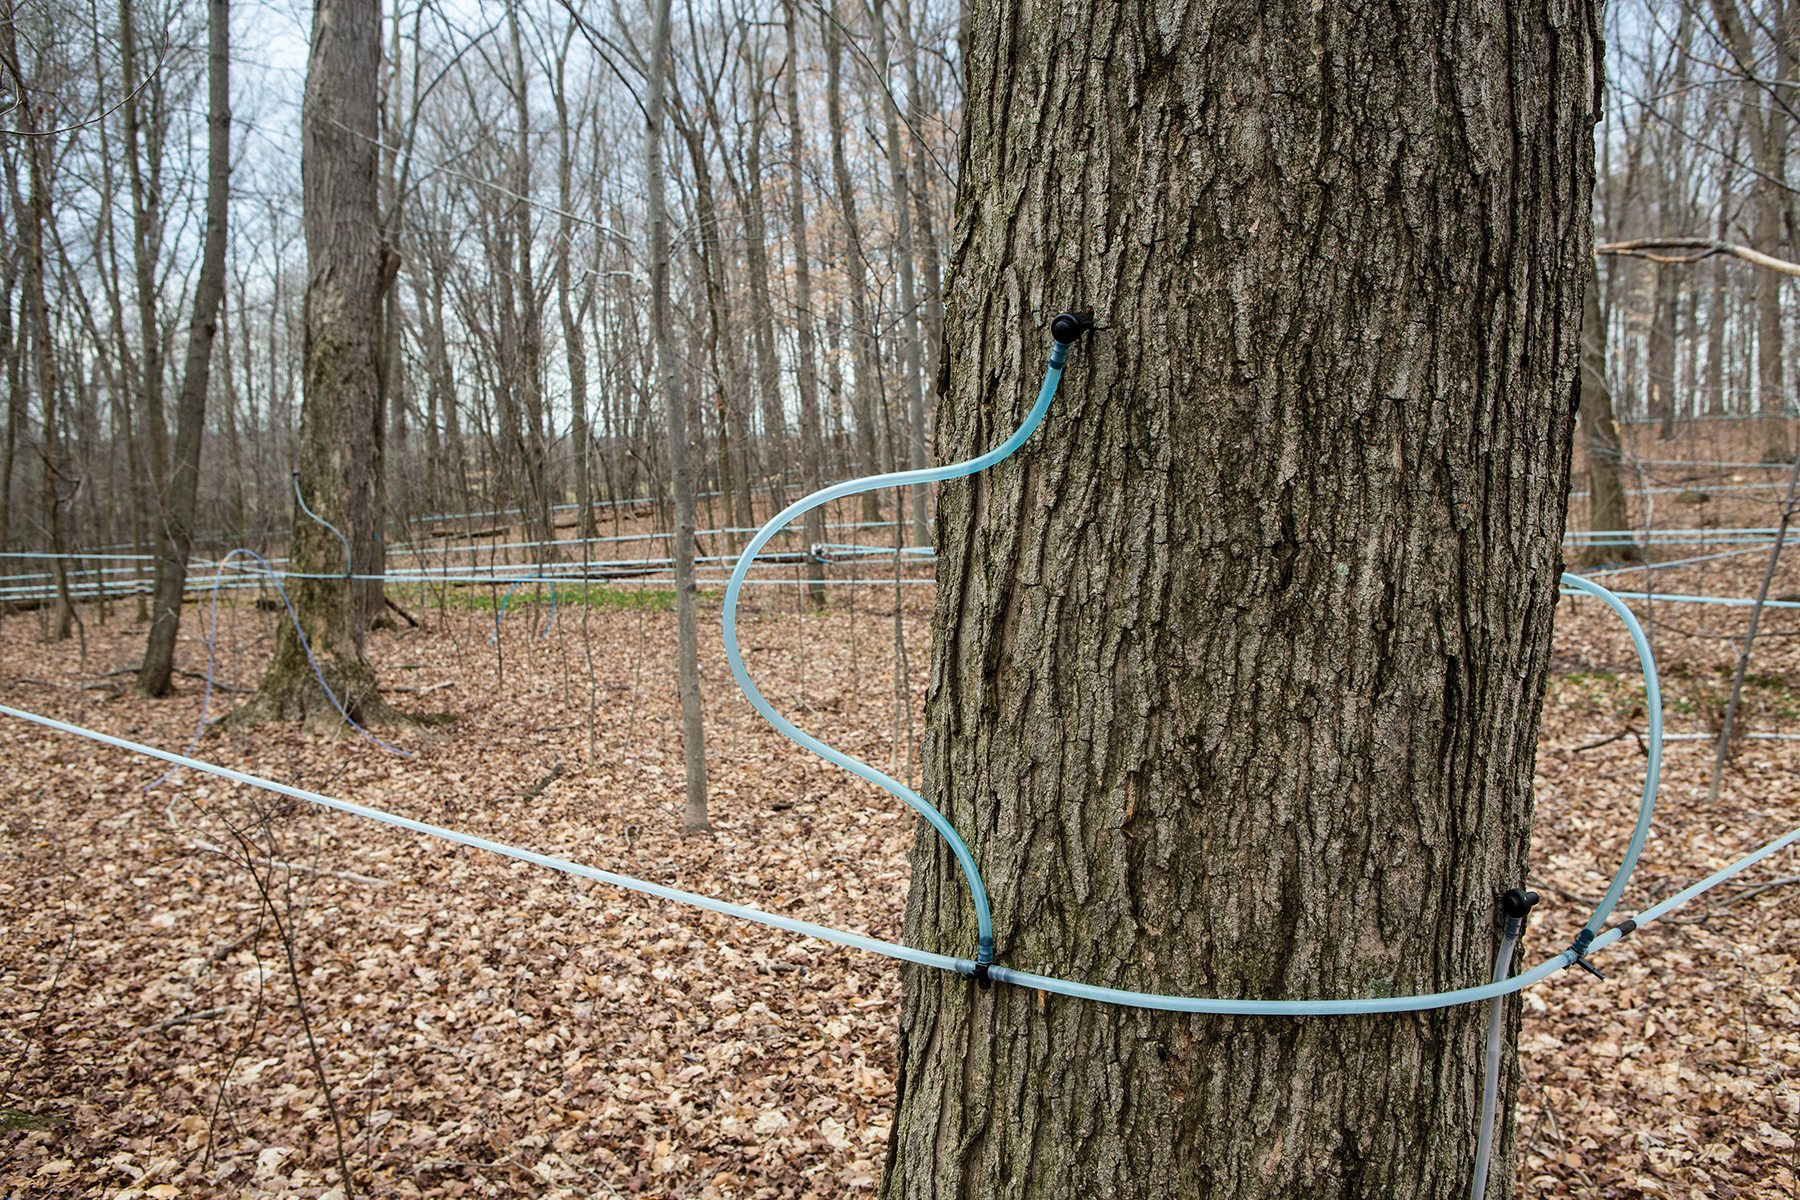 March 2016 - Maple Madness Driving Trail Misty Maple Sugar House 10644 W Middleton Rd Salem, OH 44460